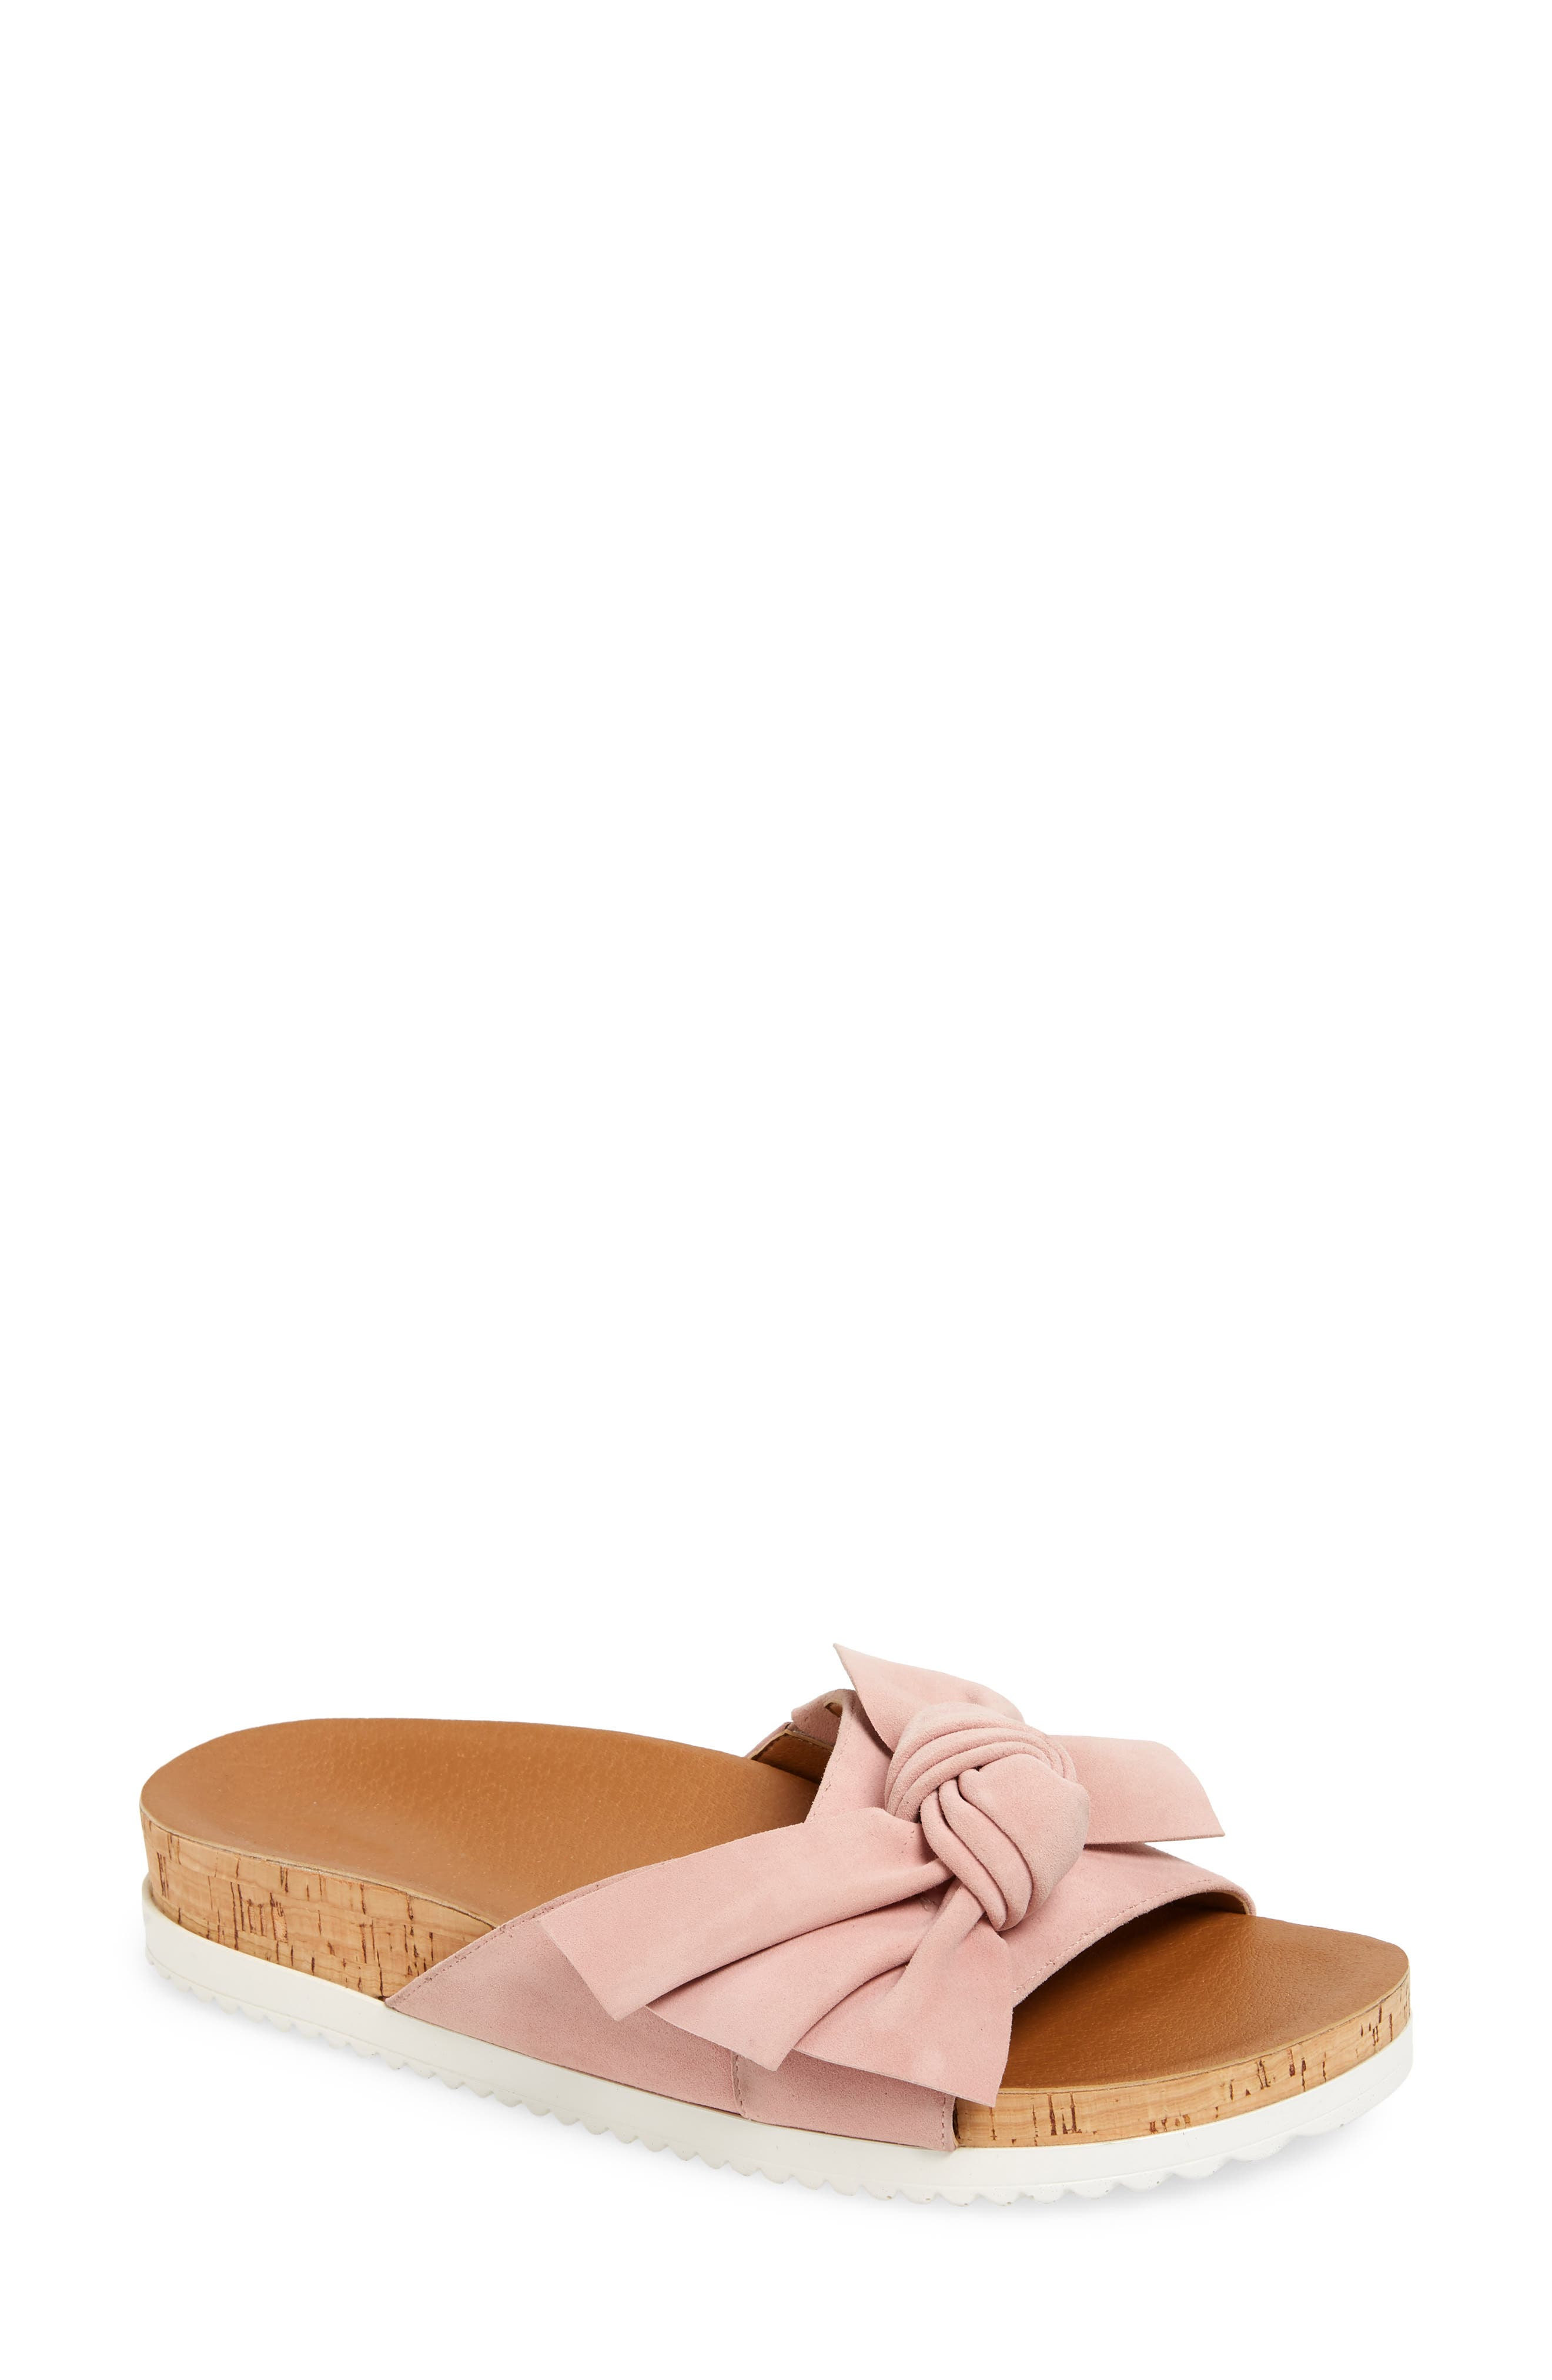 A cork midsole adds a summery touch to a leather slide fashioned with a knotted bow at the suede strap. Style Name: Caslon Kailee Slide Sandal (Women). Style Number: 6014912. Available in stores.